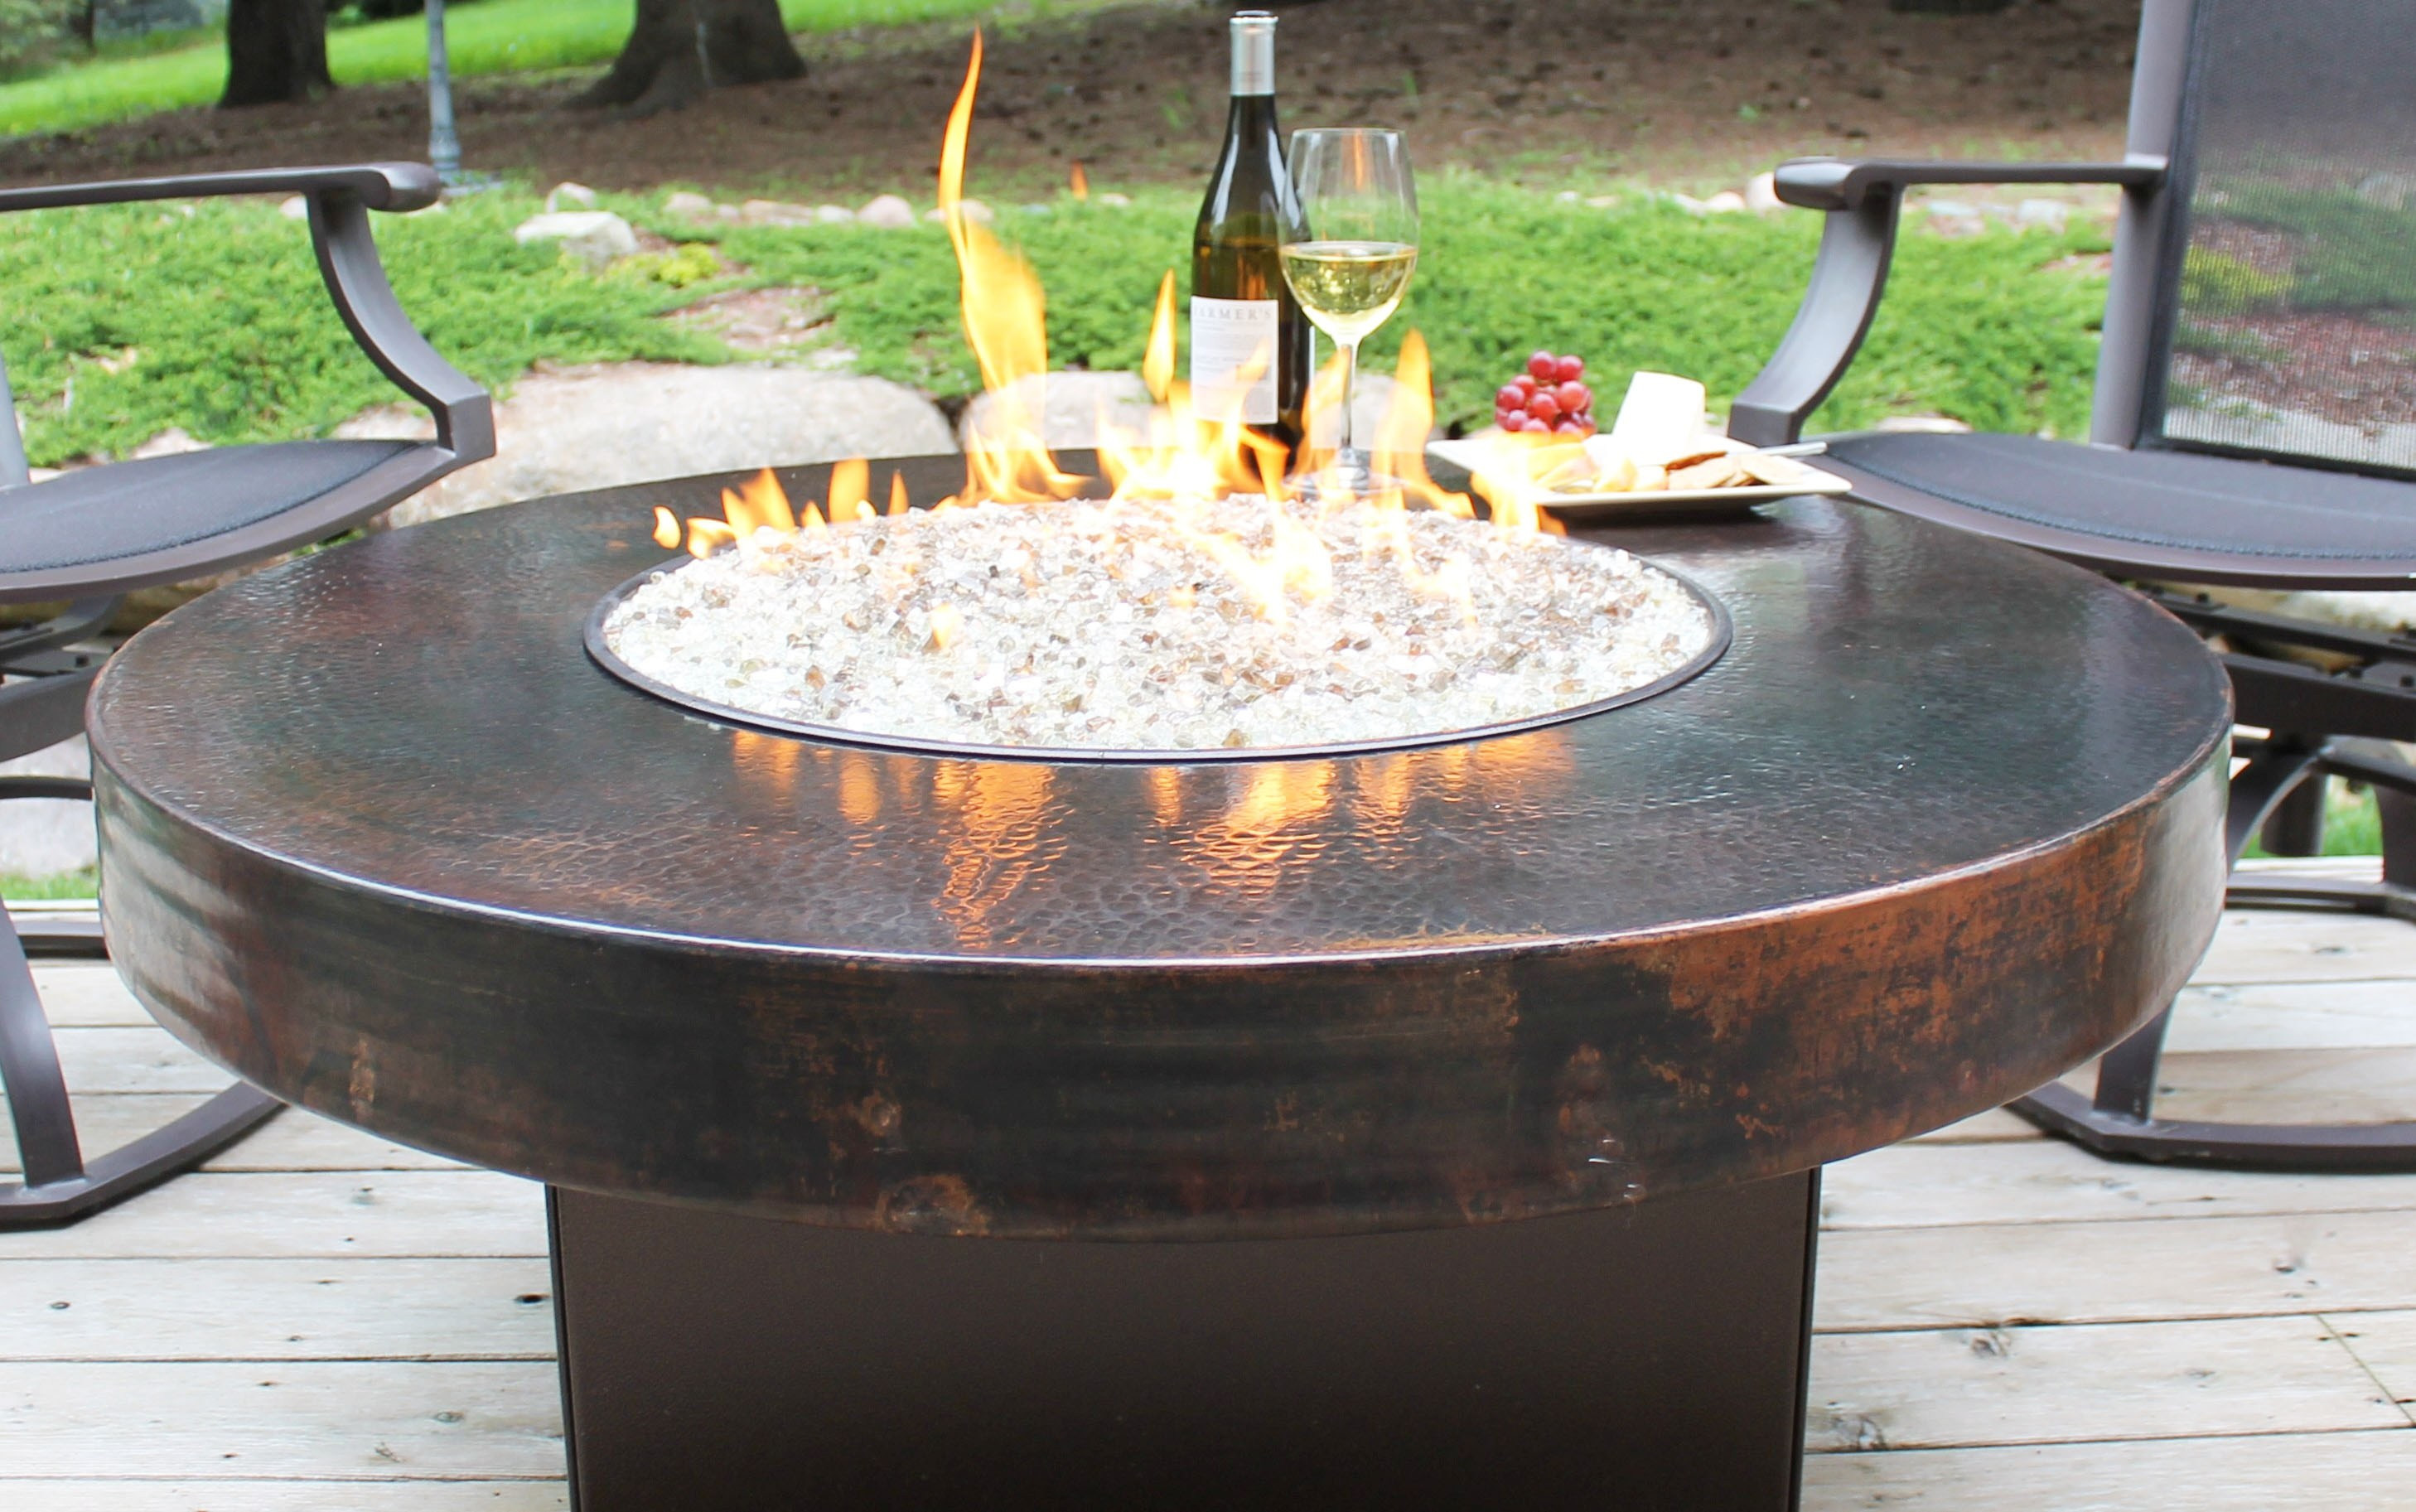 Best ideas about DIY Fire Pit Kit . Save or Pin How to Make Tabletop Fire Pit Kit DIY Now.